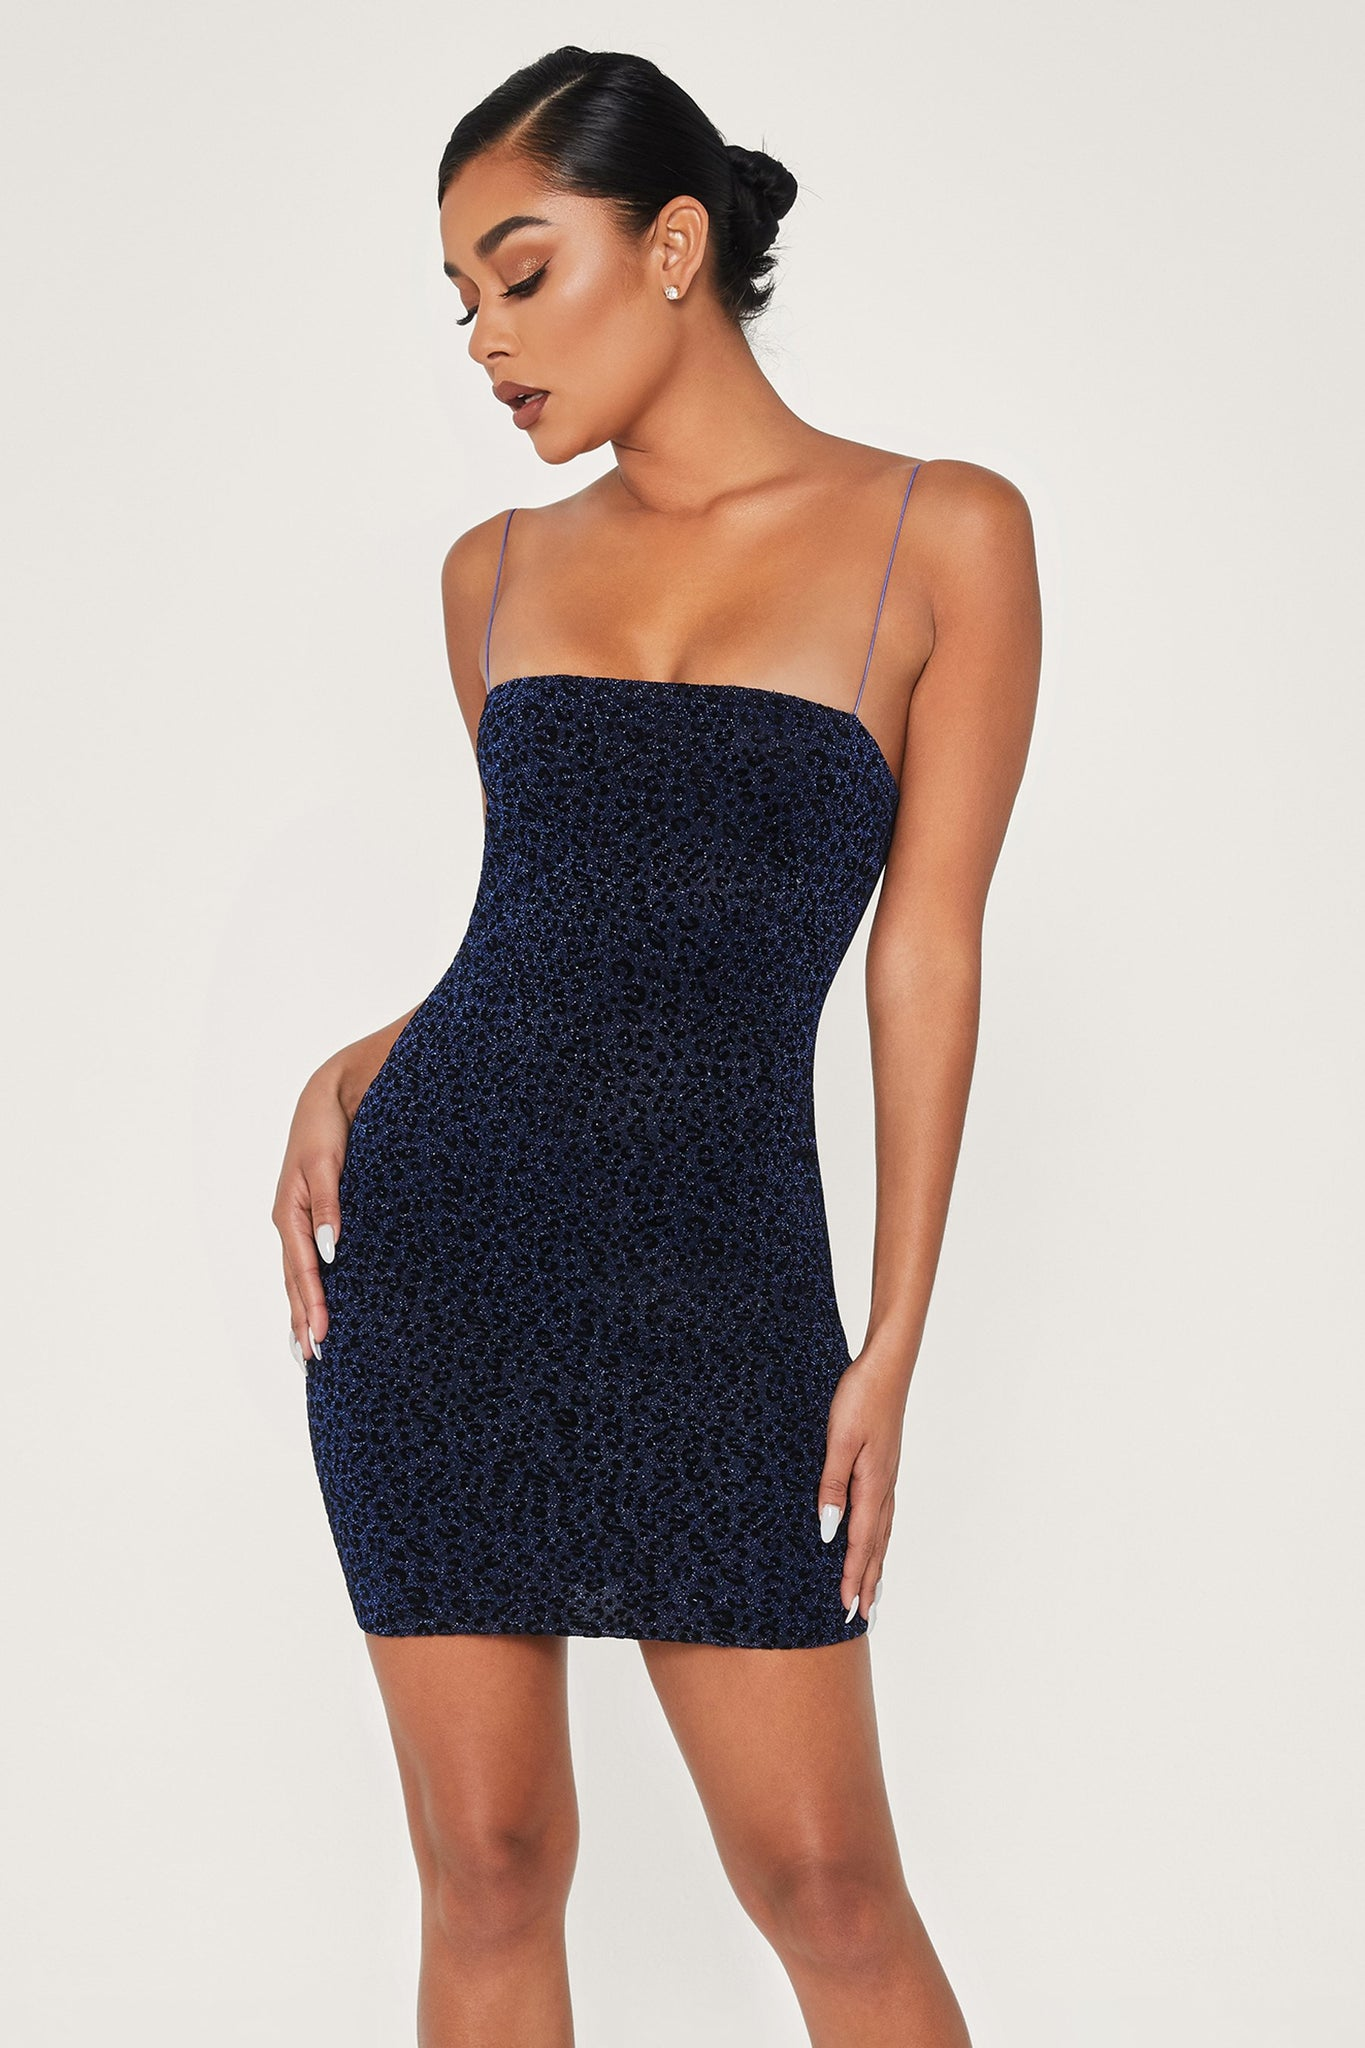 Mia Thin Strap Shimmer Leopard Bodycon Mini Dress - Navy - MESHKI